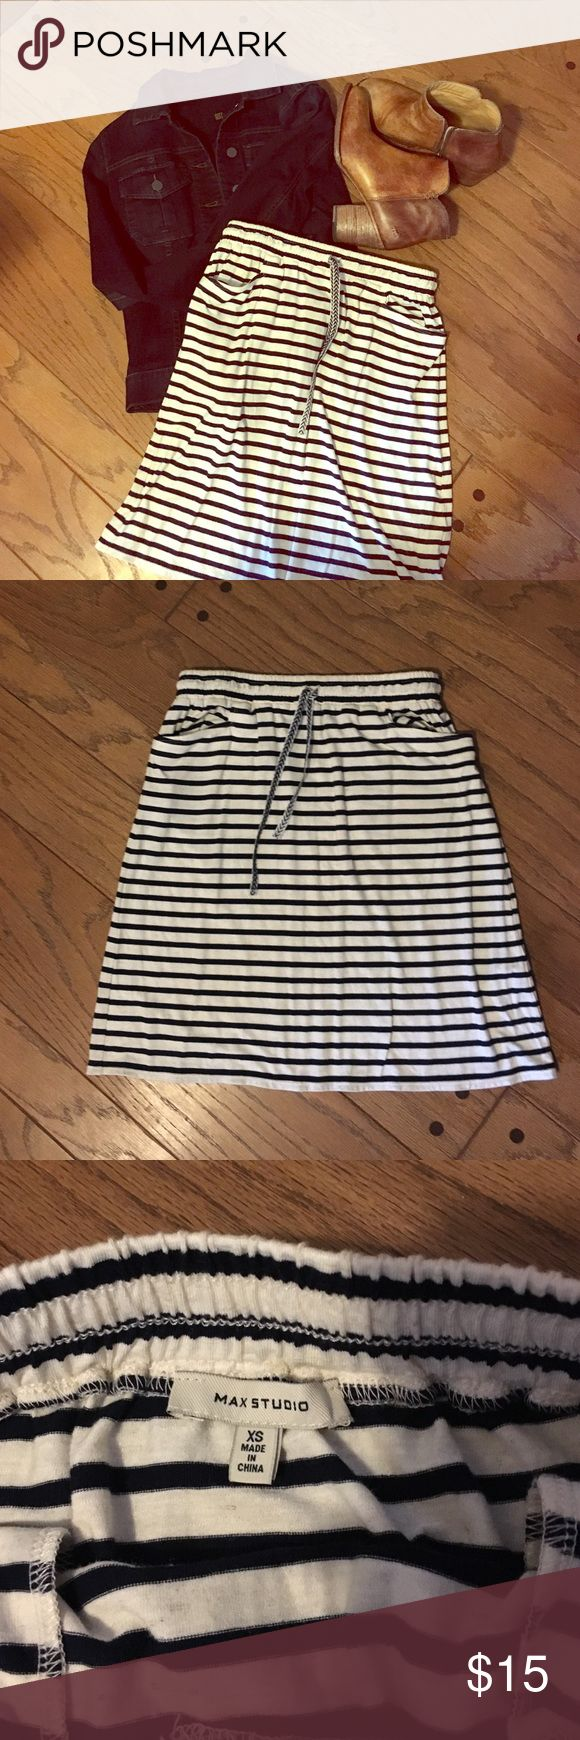 Comfy Max Studio navy striped skirt This is the comfiest skirt. Striped with navy and cream. Size XS, Max Studio. Elastic waistband so it would also fit a small. Max Studio Skirts Mini